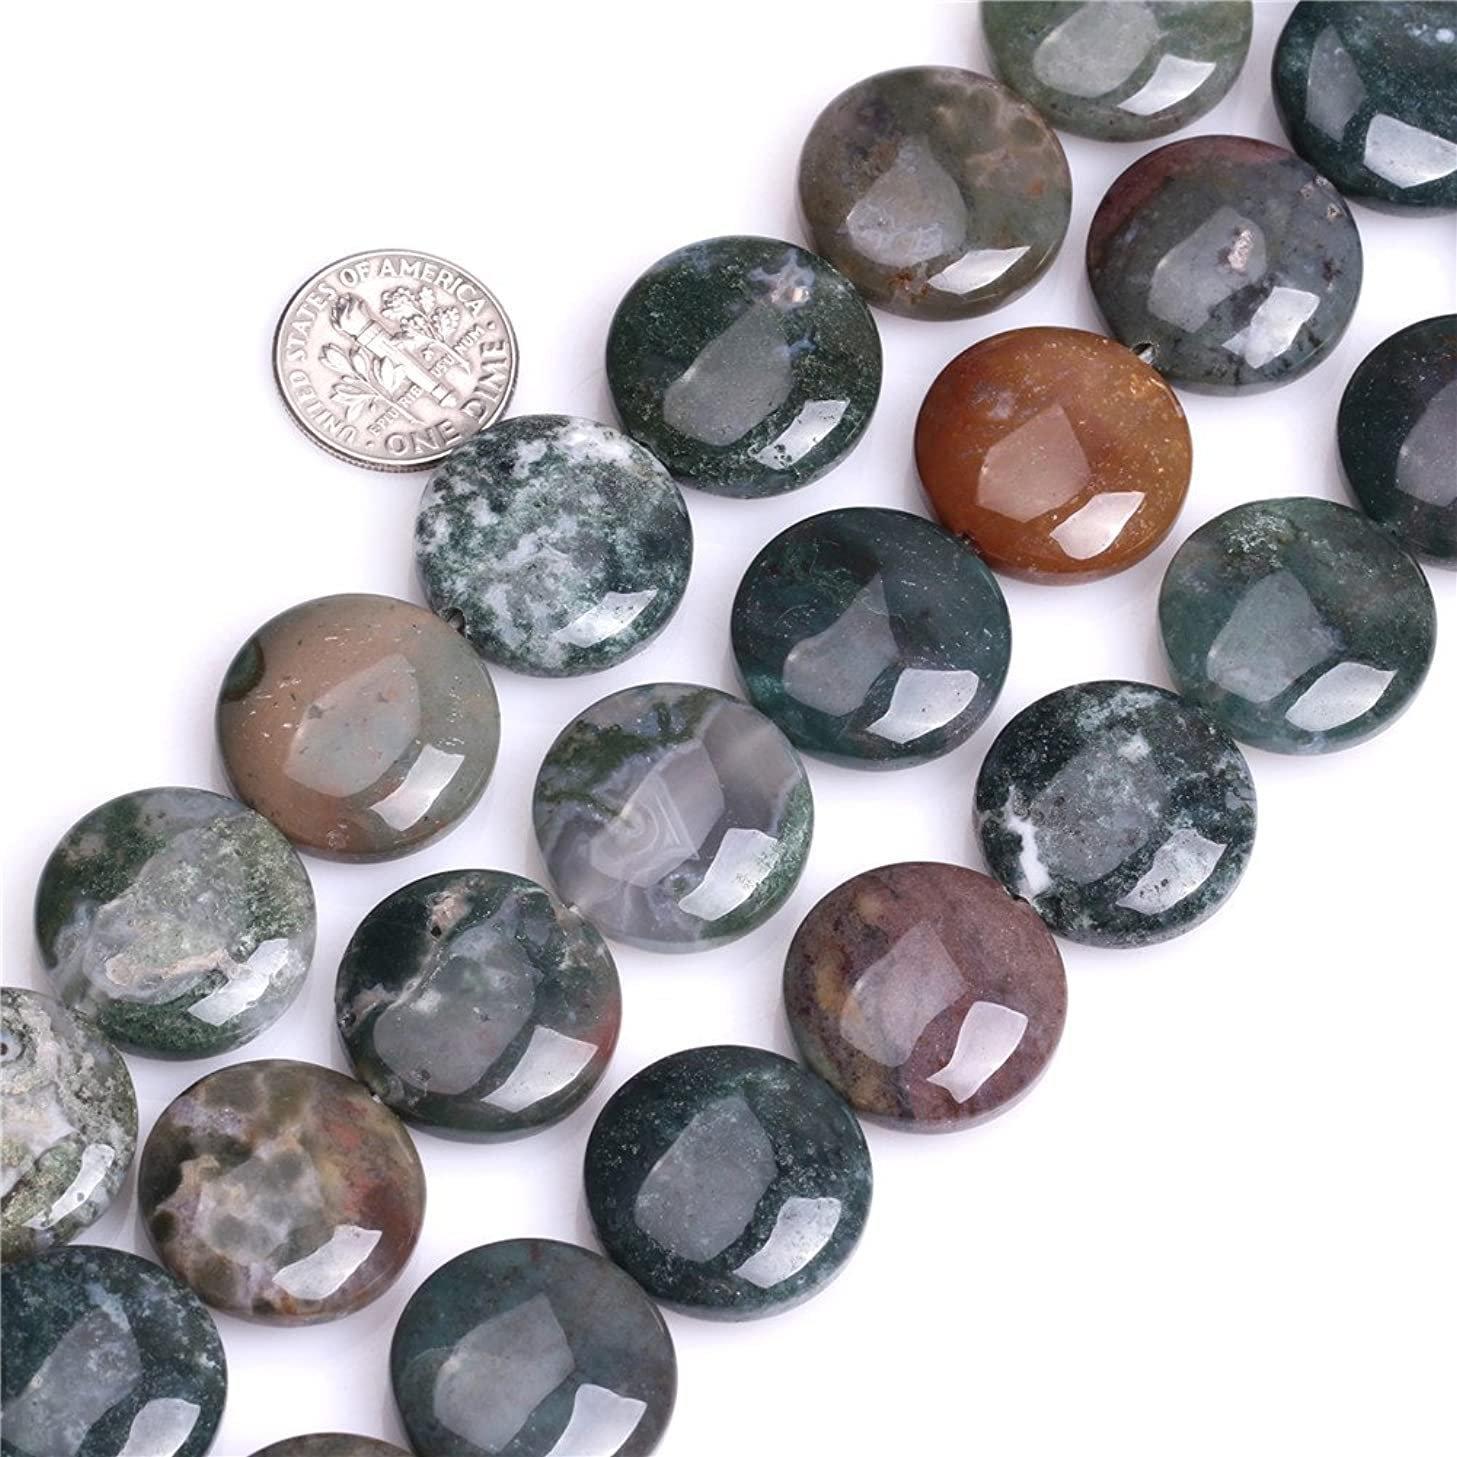 Moss Agate Beads for Jewelry Making Natural Semi Precious Gemstone 20mm Coin Strand 15